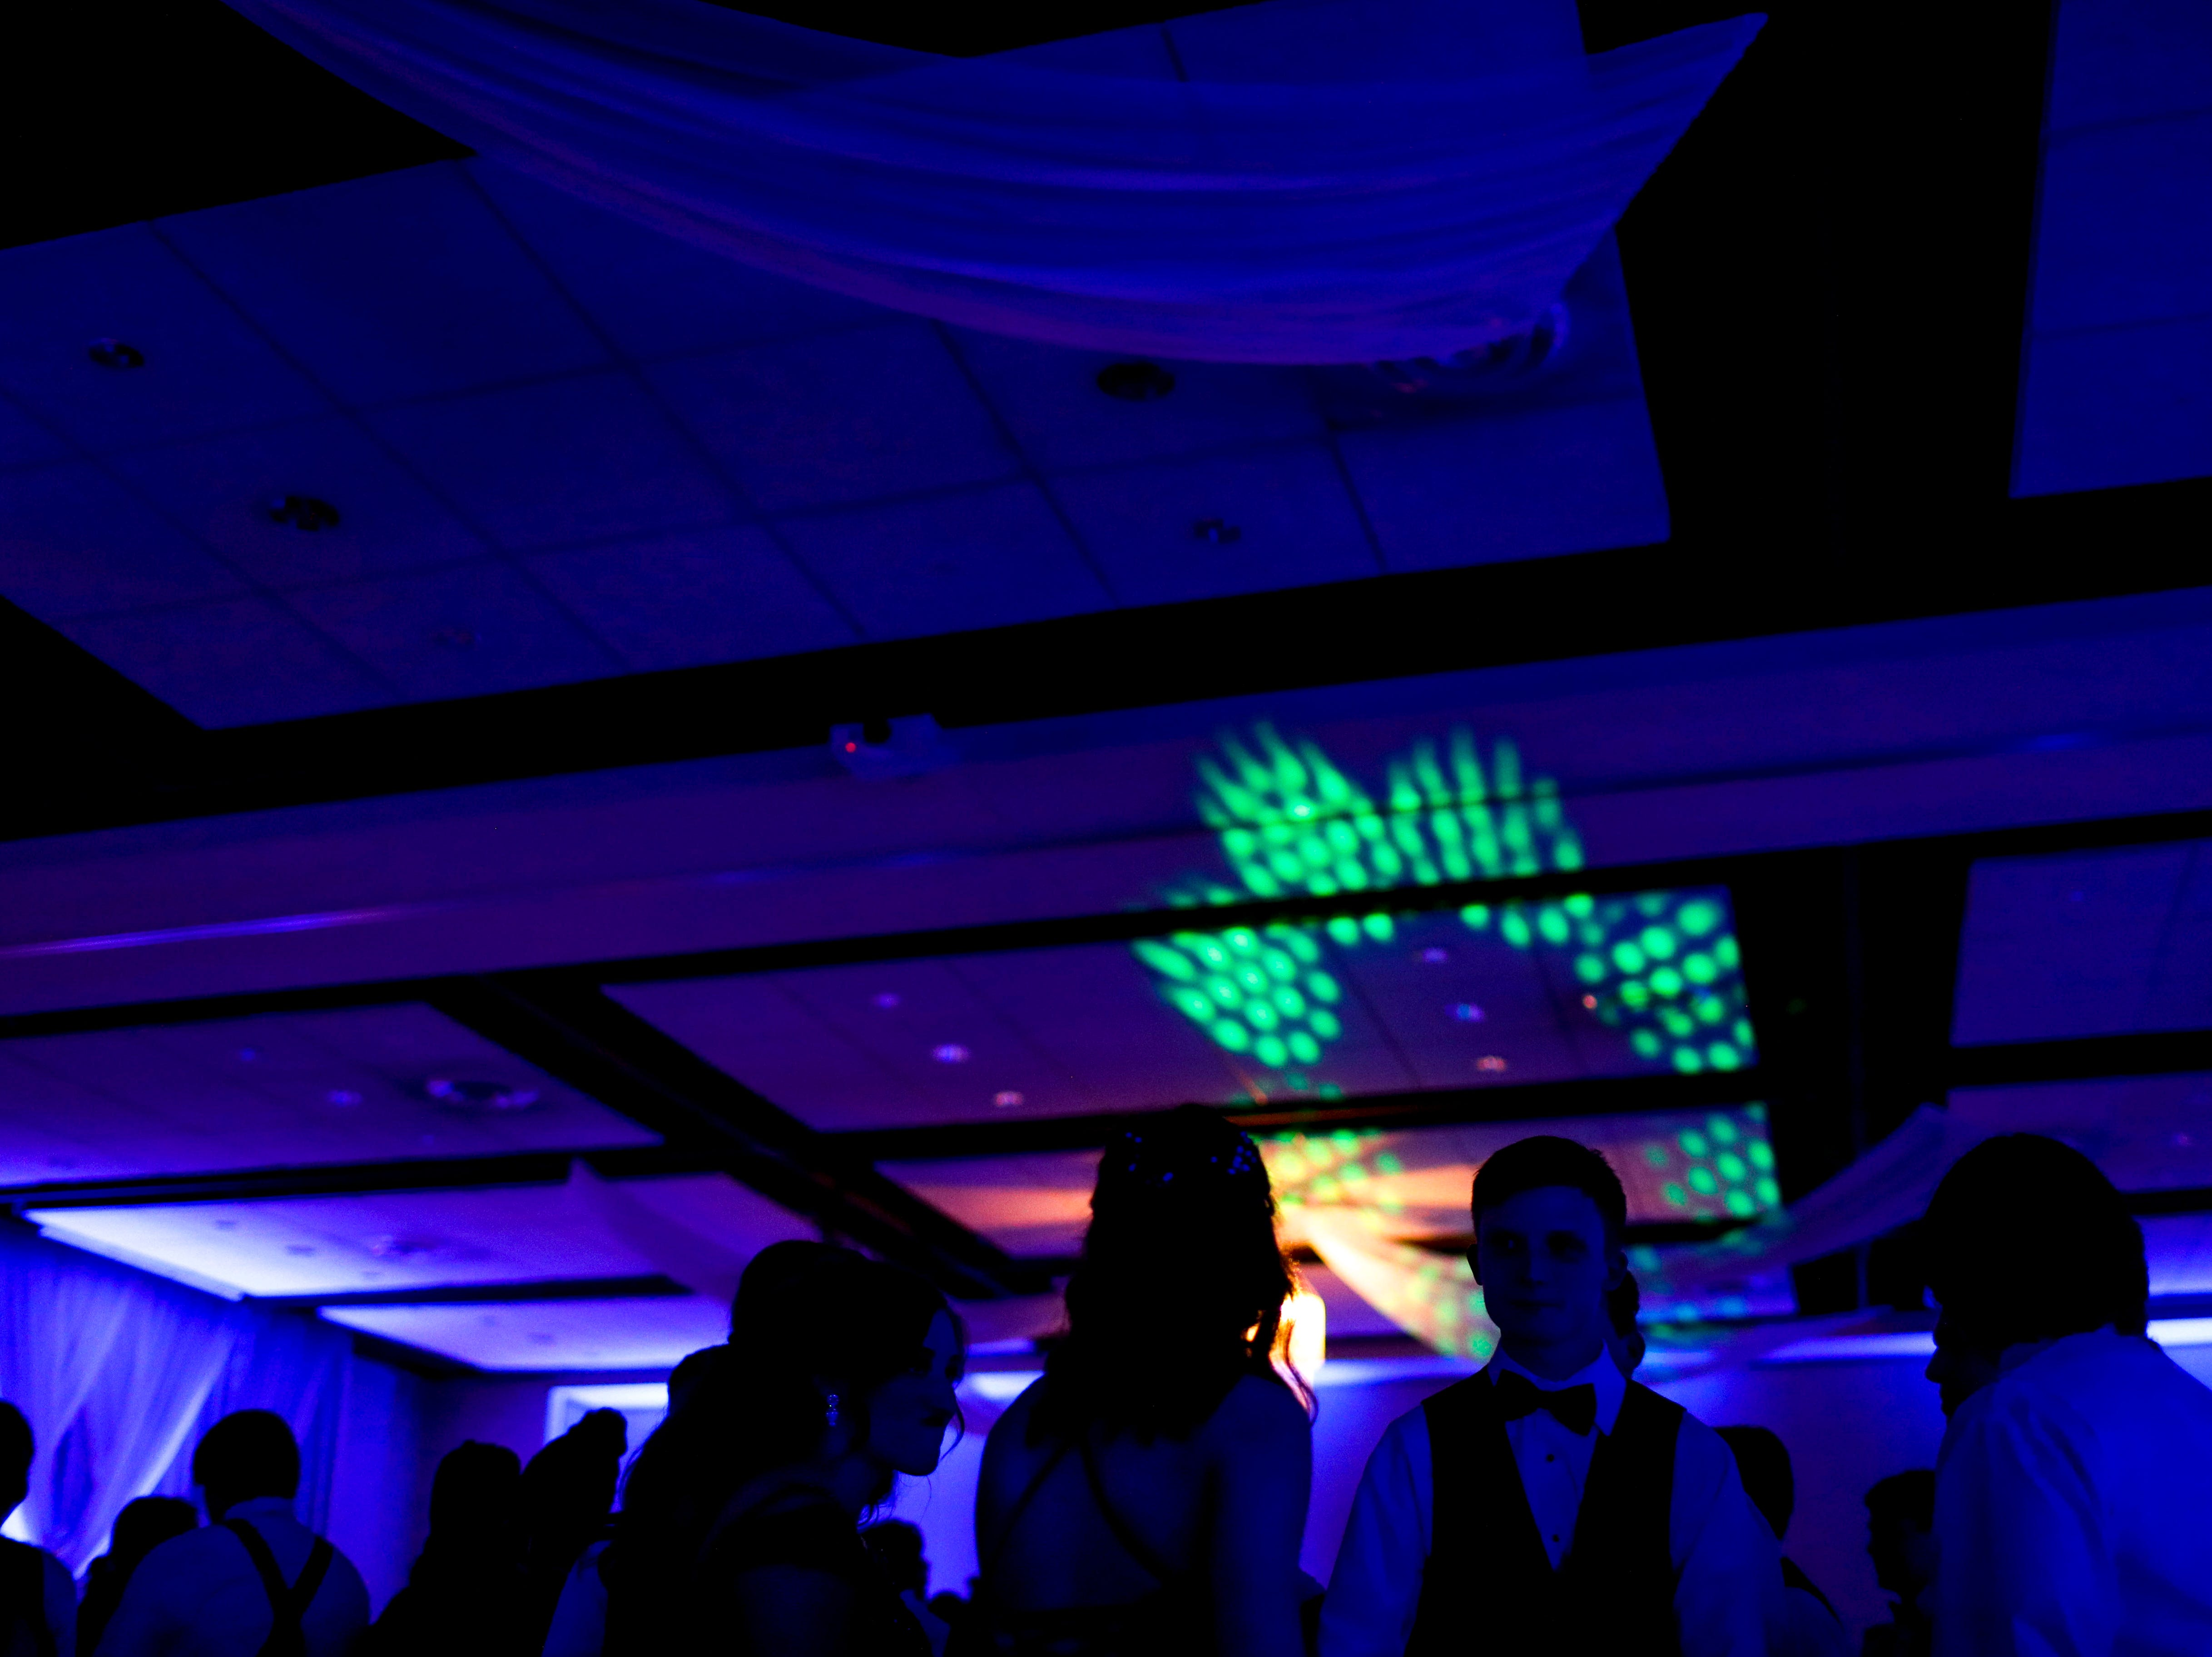 Students dance in small groups during Clarksville Academy's 2019 prom at The Bruce Convention Center in Hopkinsville, Ky., on Saturday, April 6, 2019.